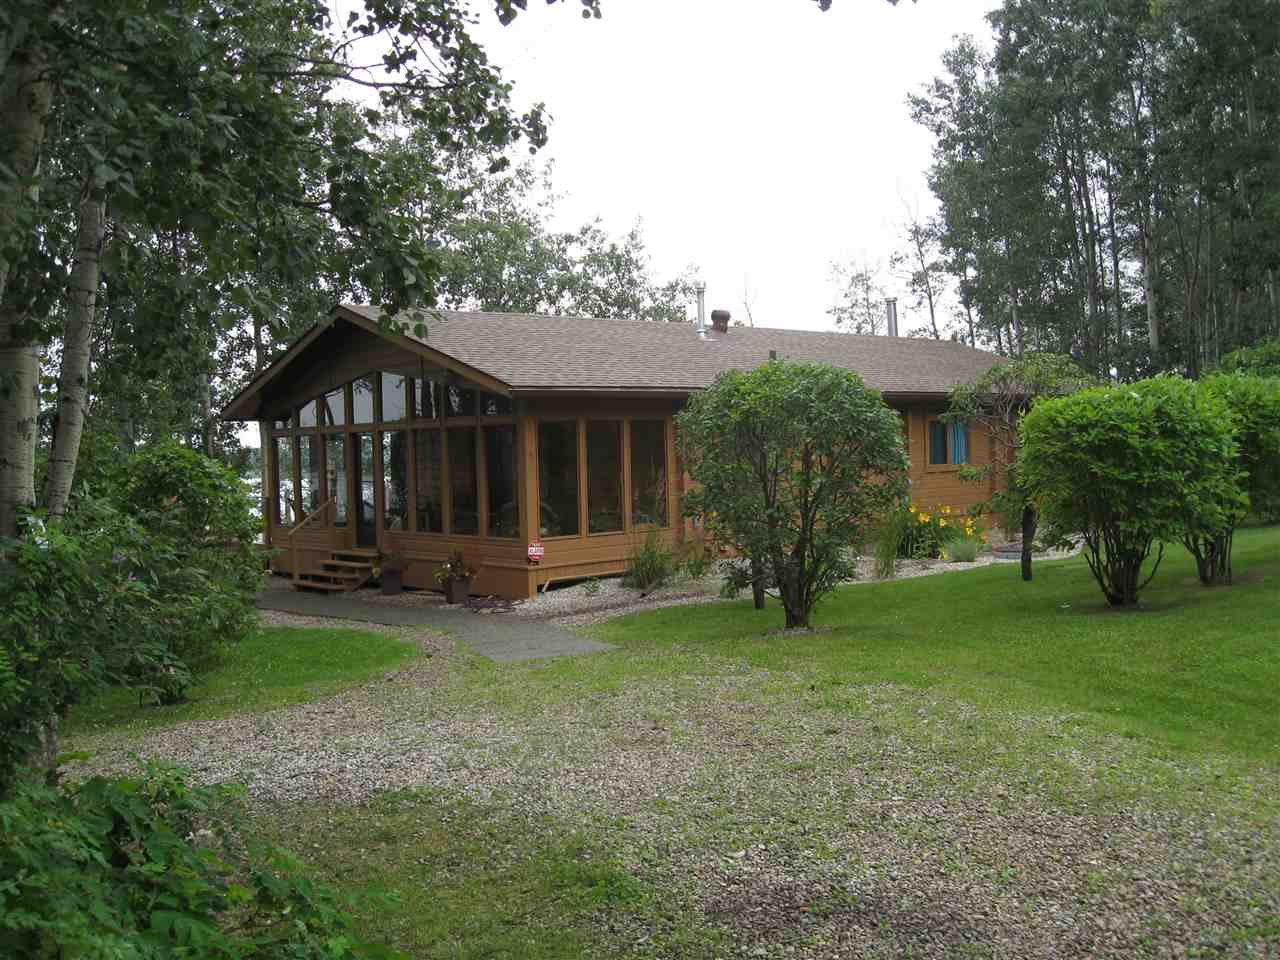 Photo 24: Photos: 5, 1319 Twp Rd 550: Rural Lac Ste. Anne County House for sale : MLS®# E4167720